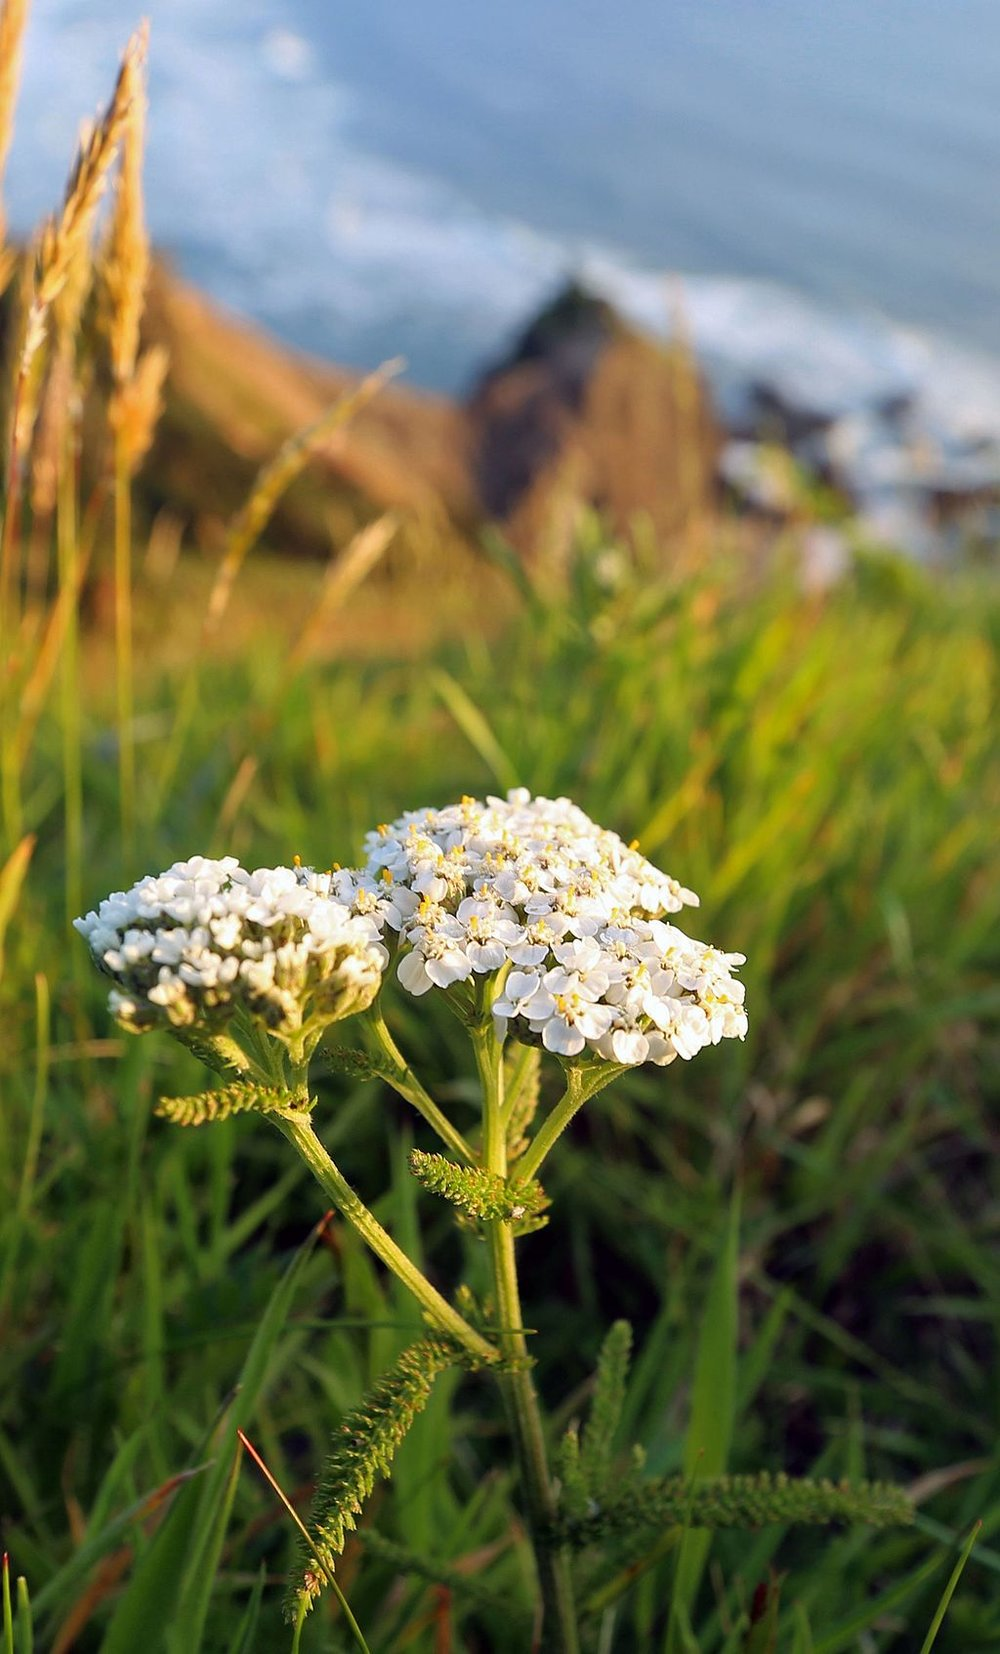 White Yarrow by Peter Pearsall/U.S. Fish and Wildlife Service, via Wikimedia Commons.